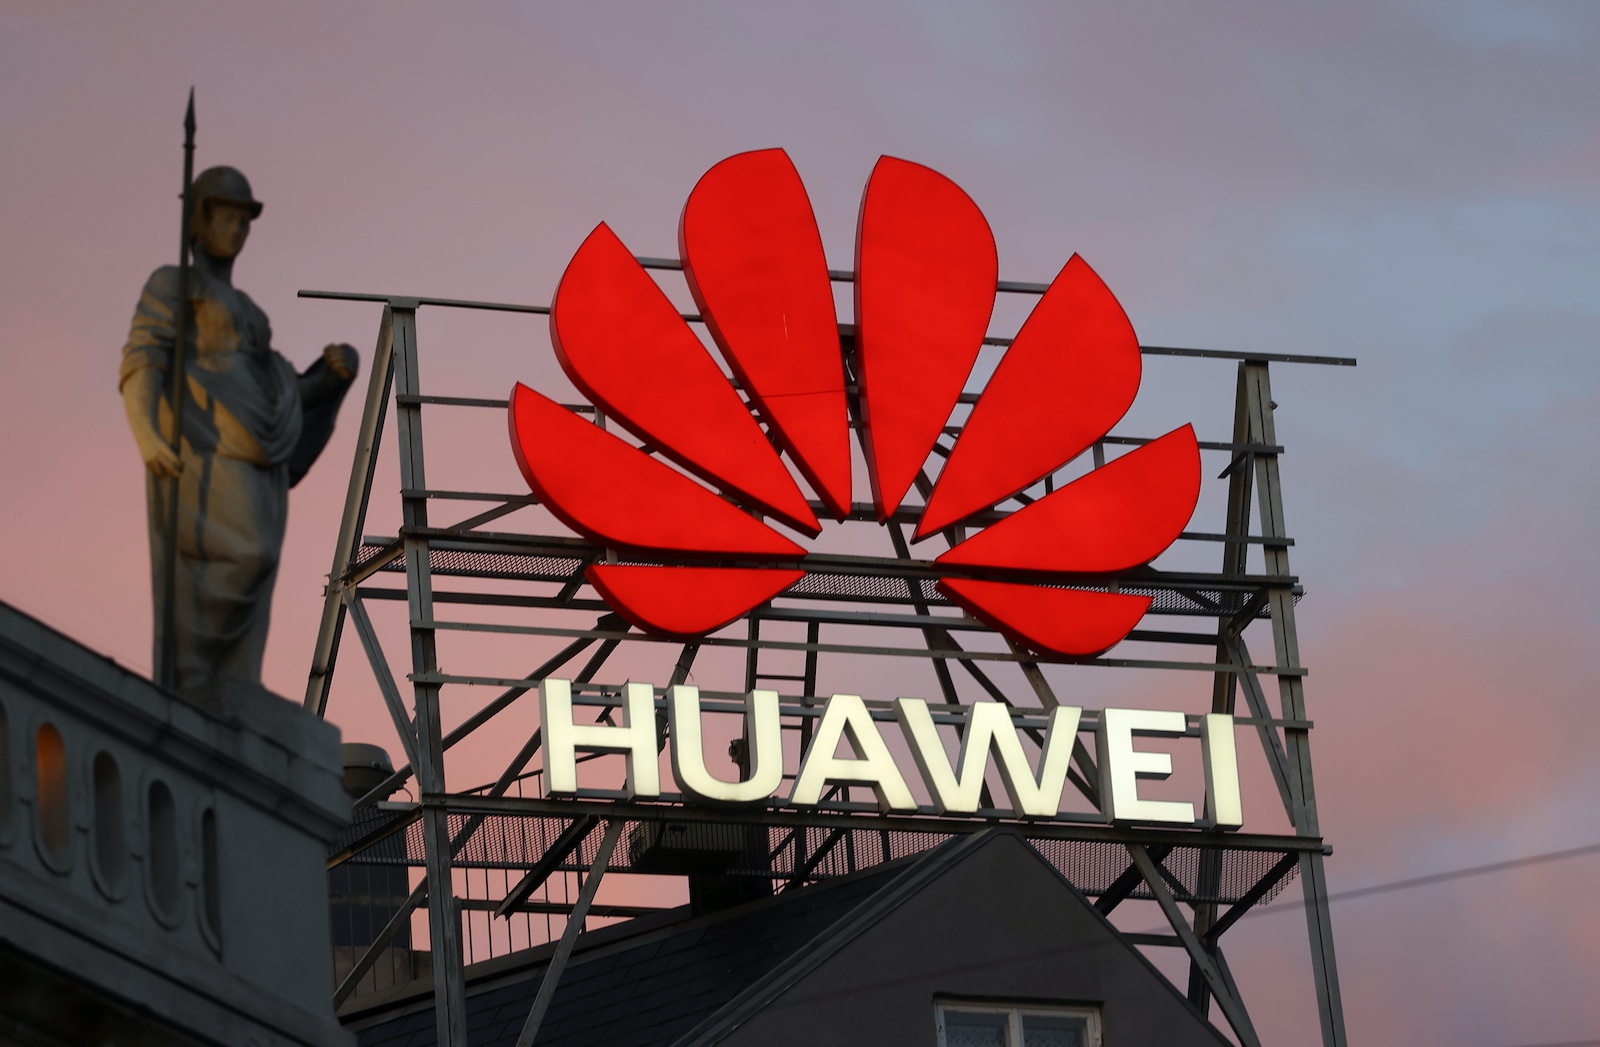 The logo of the Chinese telecommunications giant Huawei Technologies is pictured next to a statue on top of a building in Copenhagen, Denmark, June 23, 2021. REUTERS/Wolfgang Rattay - RC2J6O9U7F43